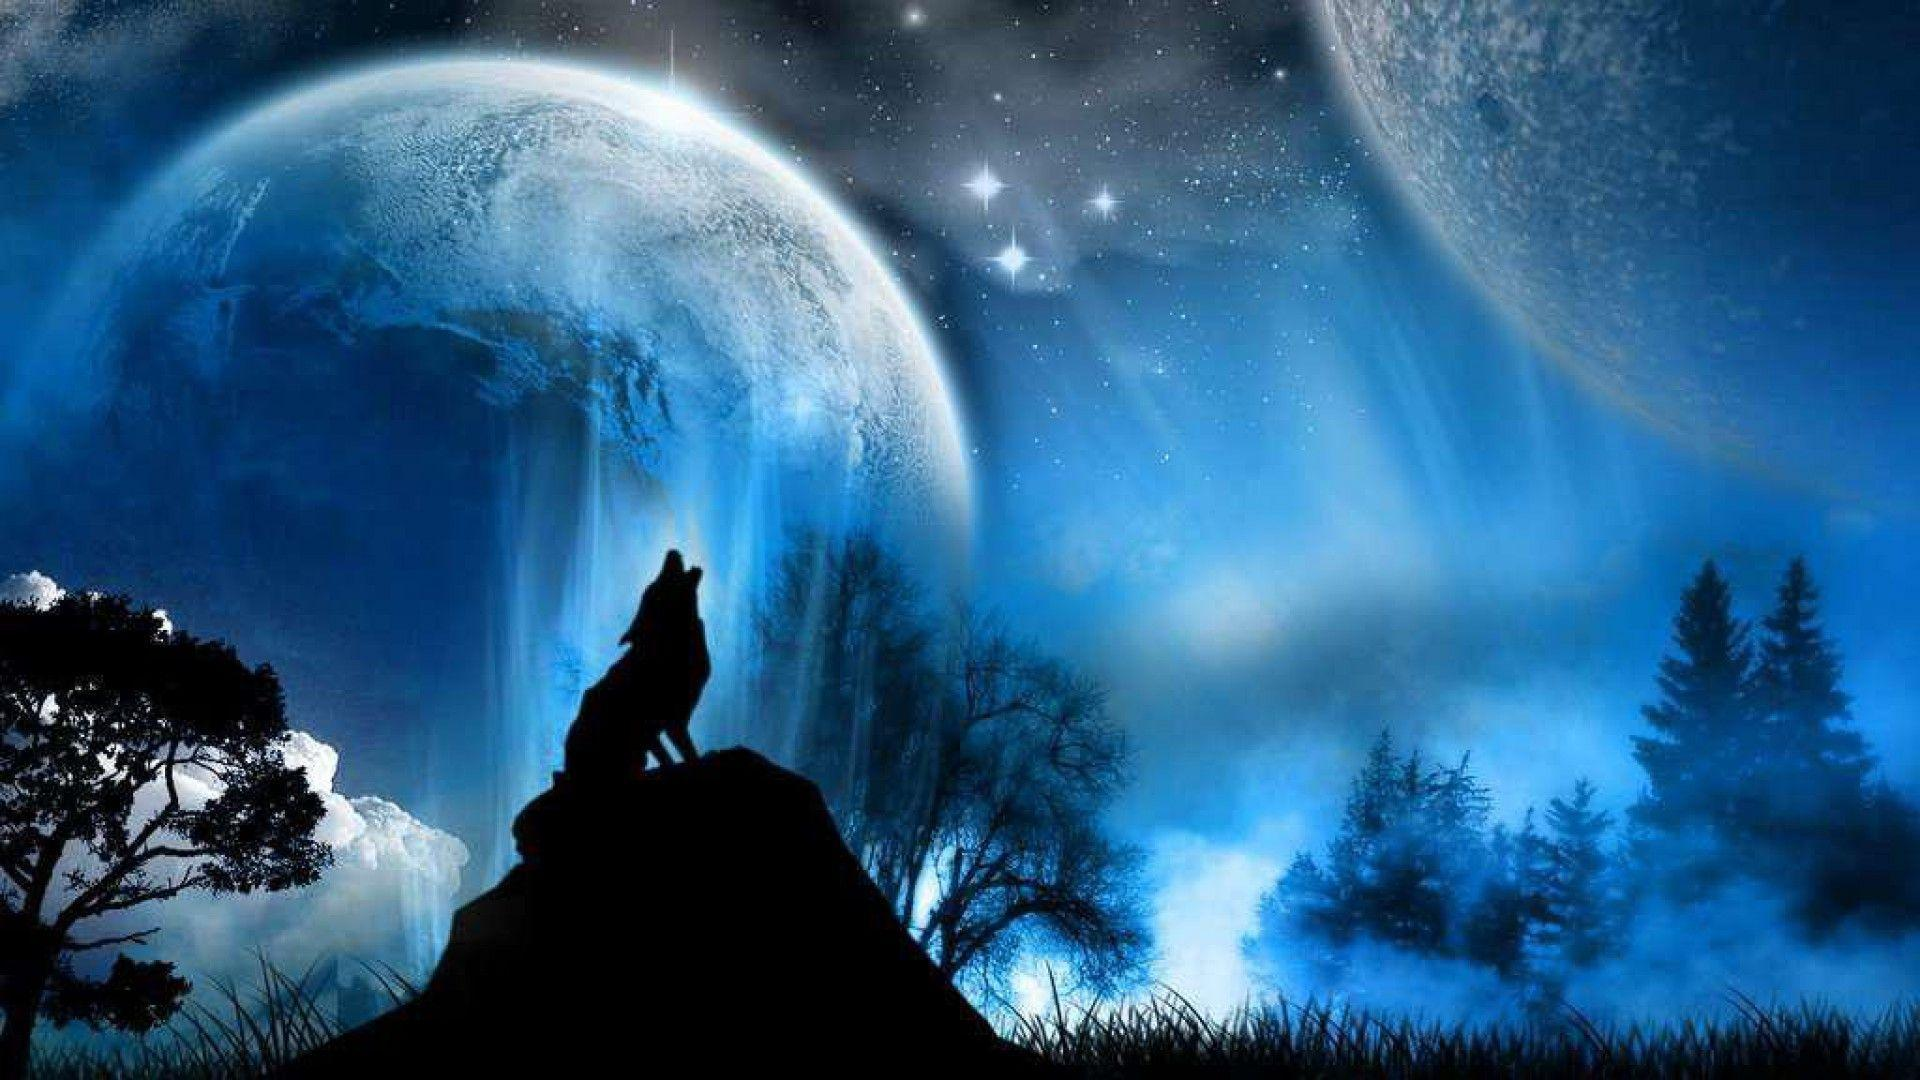 Wolf Wallpaper Hd 1080p Desktop #1223 Wallpaper | walldesktophd.